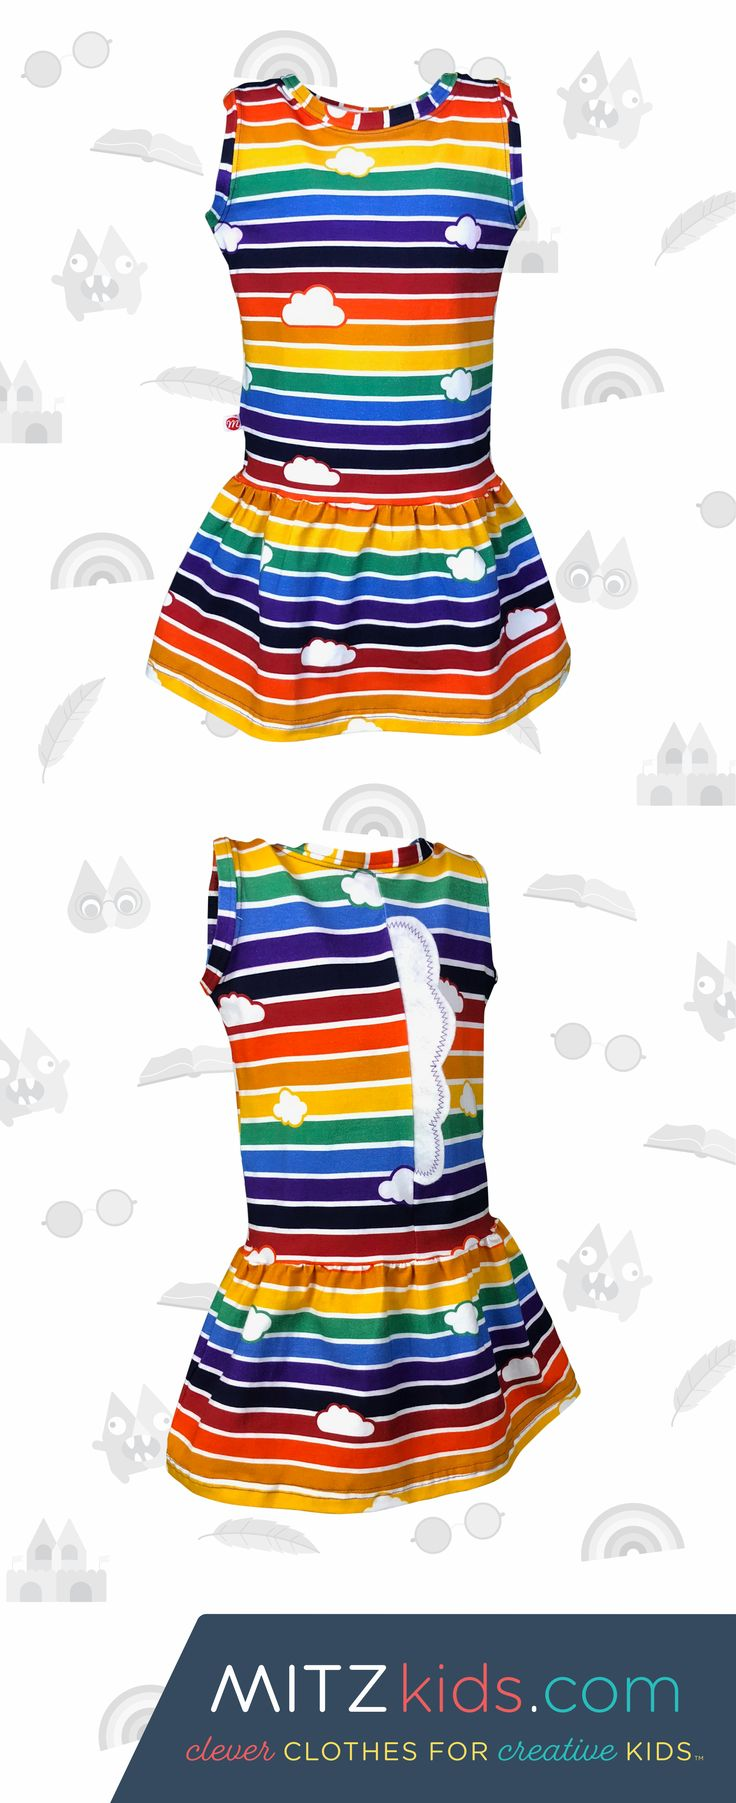 Retro Rainbow Children's Dress with Clouds   Mitz Kids The Retro Rainbow dress is designed to support children's developmental learning and early literacy development. The fun Rainbow kids dress is for babies, infants, toddlers and children (infant to Size 7).  It's perfect for a kids tea party, birthday party outfit, casual play clothes, summer kids clothes or for a play date. #babyclothes #toddlerfashion #kidsfashion #dresses #kidsdress #rainbow #kids